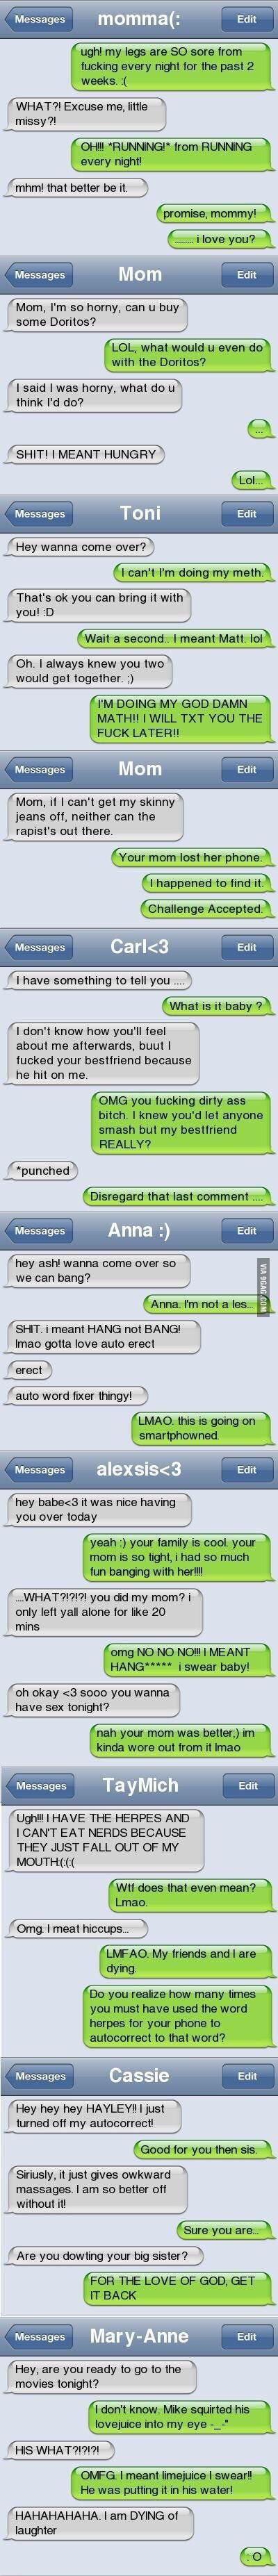 Funny autocorrect fails (BONUS Part 6) Is it just me, or did Barney Stinson answer the fourth one?